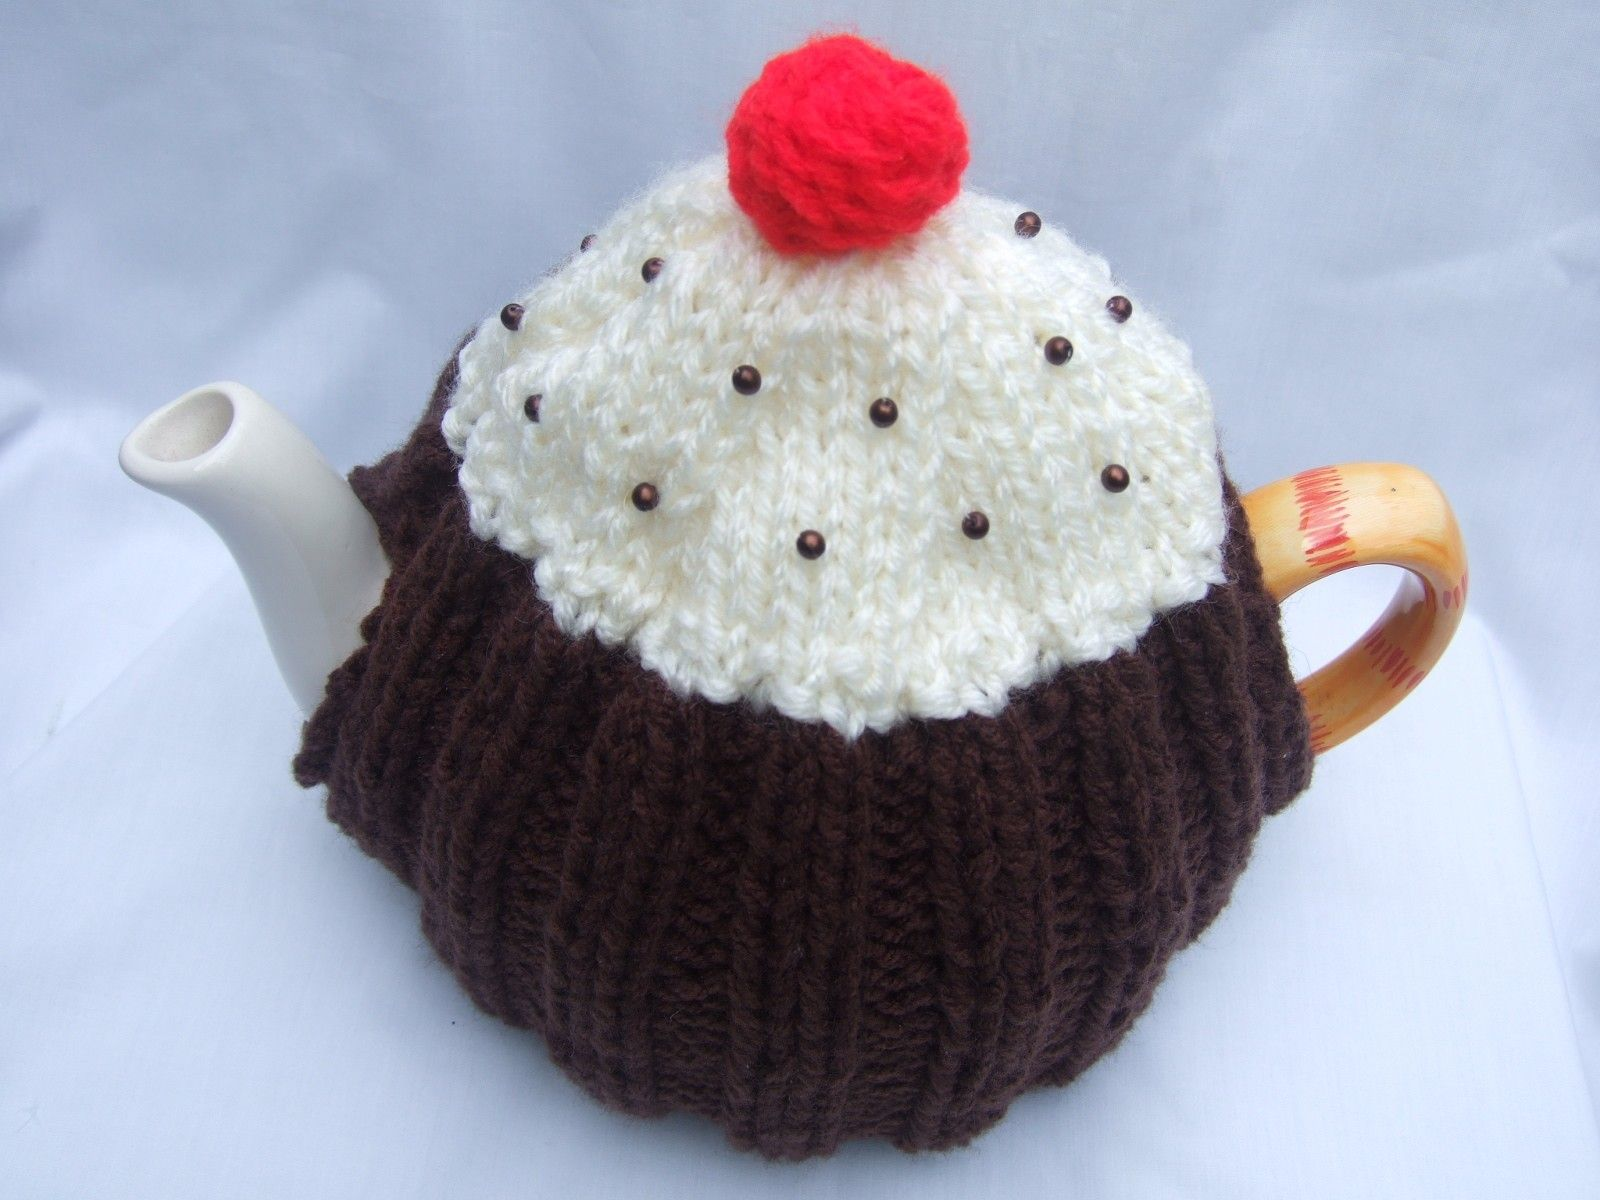 Tea cosies knitting patterns free google search brei werk tea cosies knitting patterns free google search bankloansurffo Images